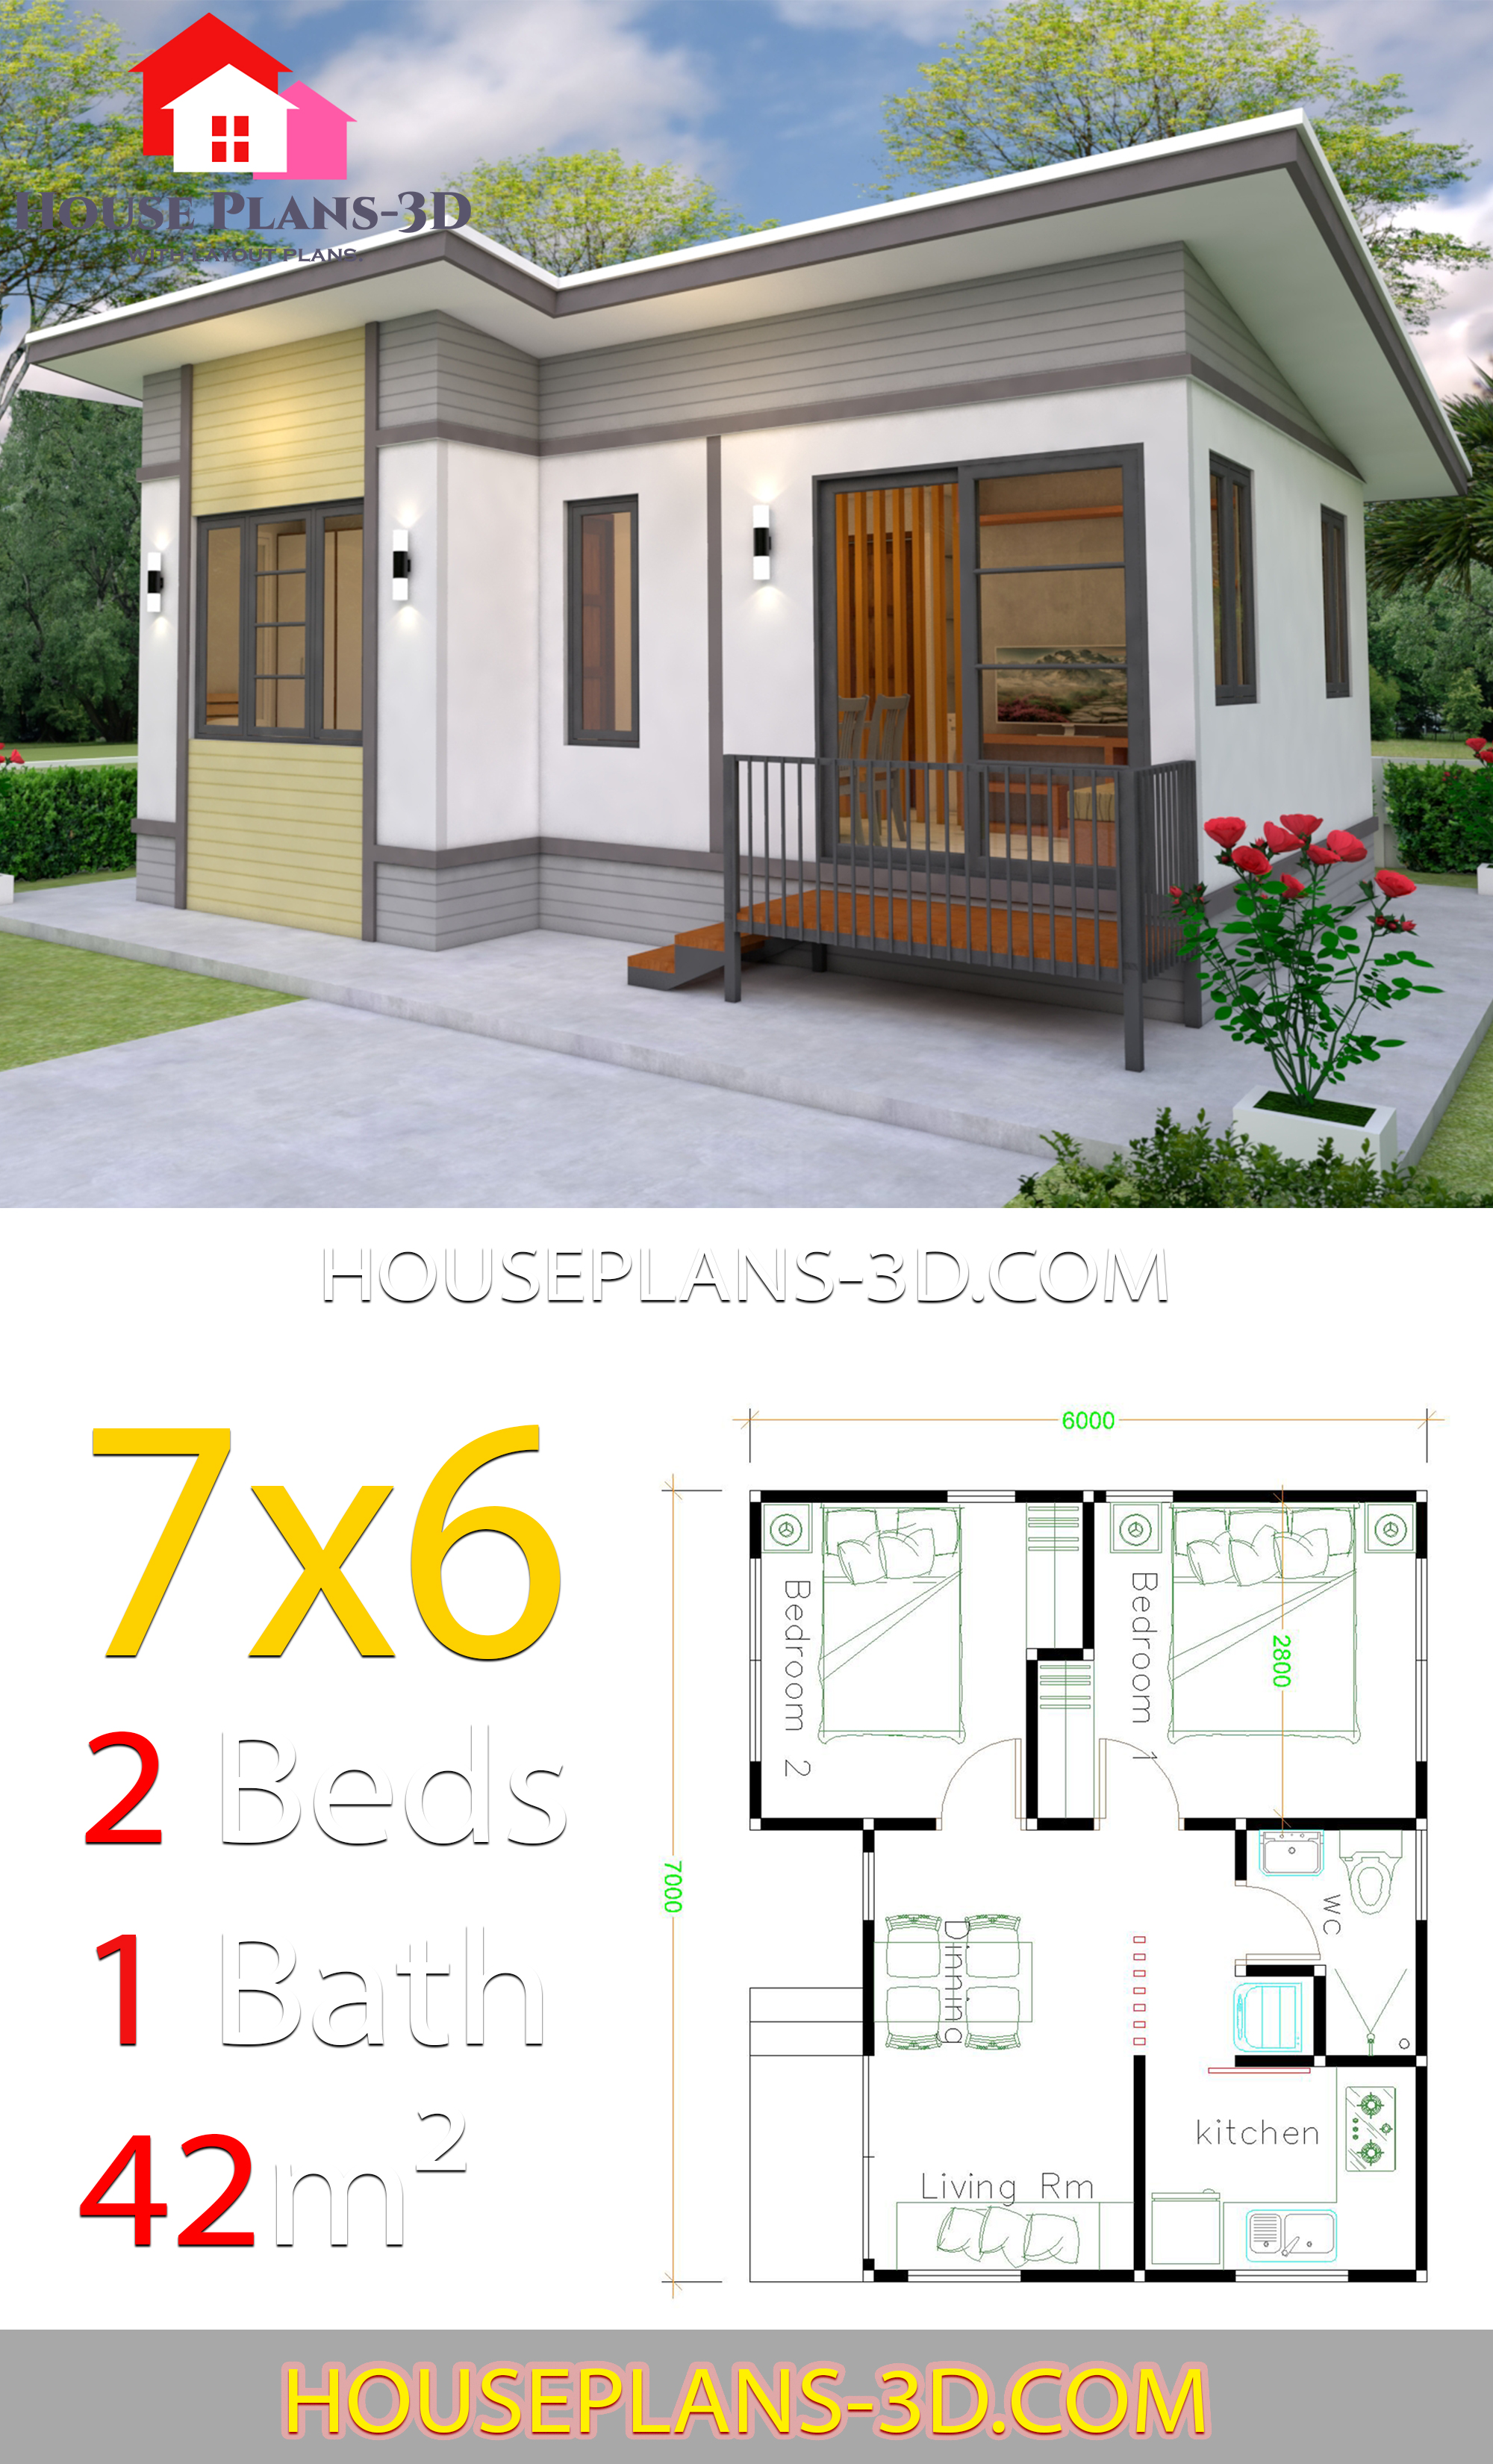 Small House plans 7x6 with 2 Bedrooms - House Plans 3D